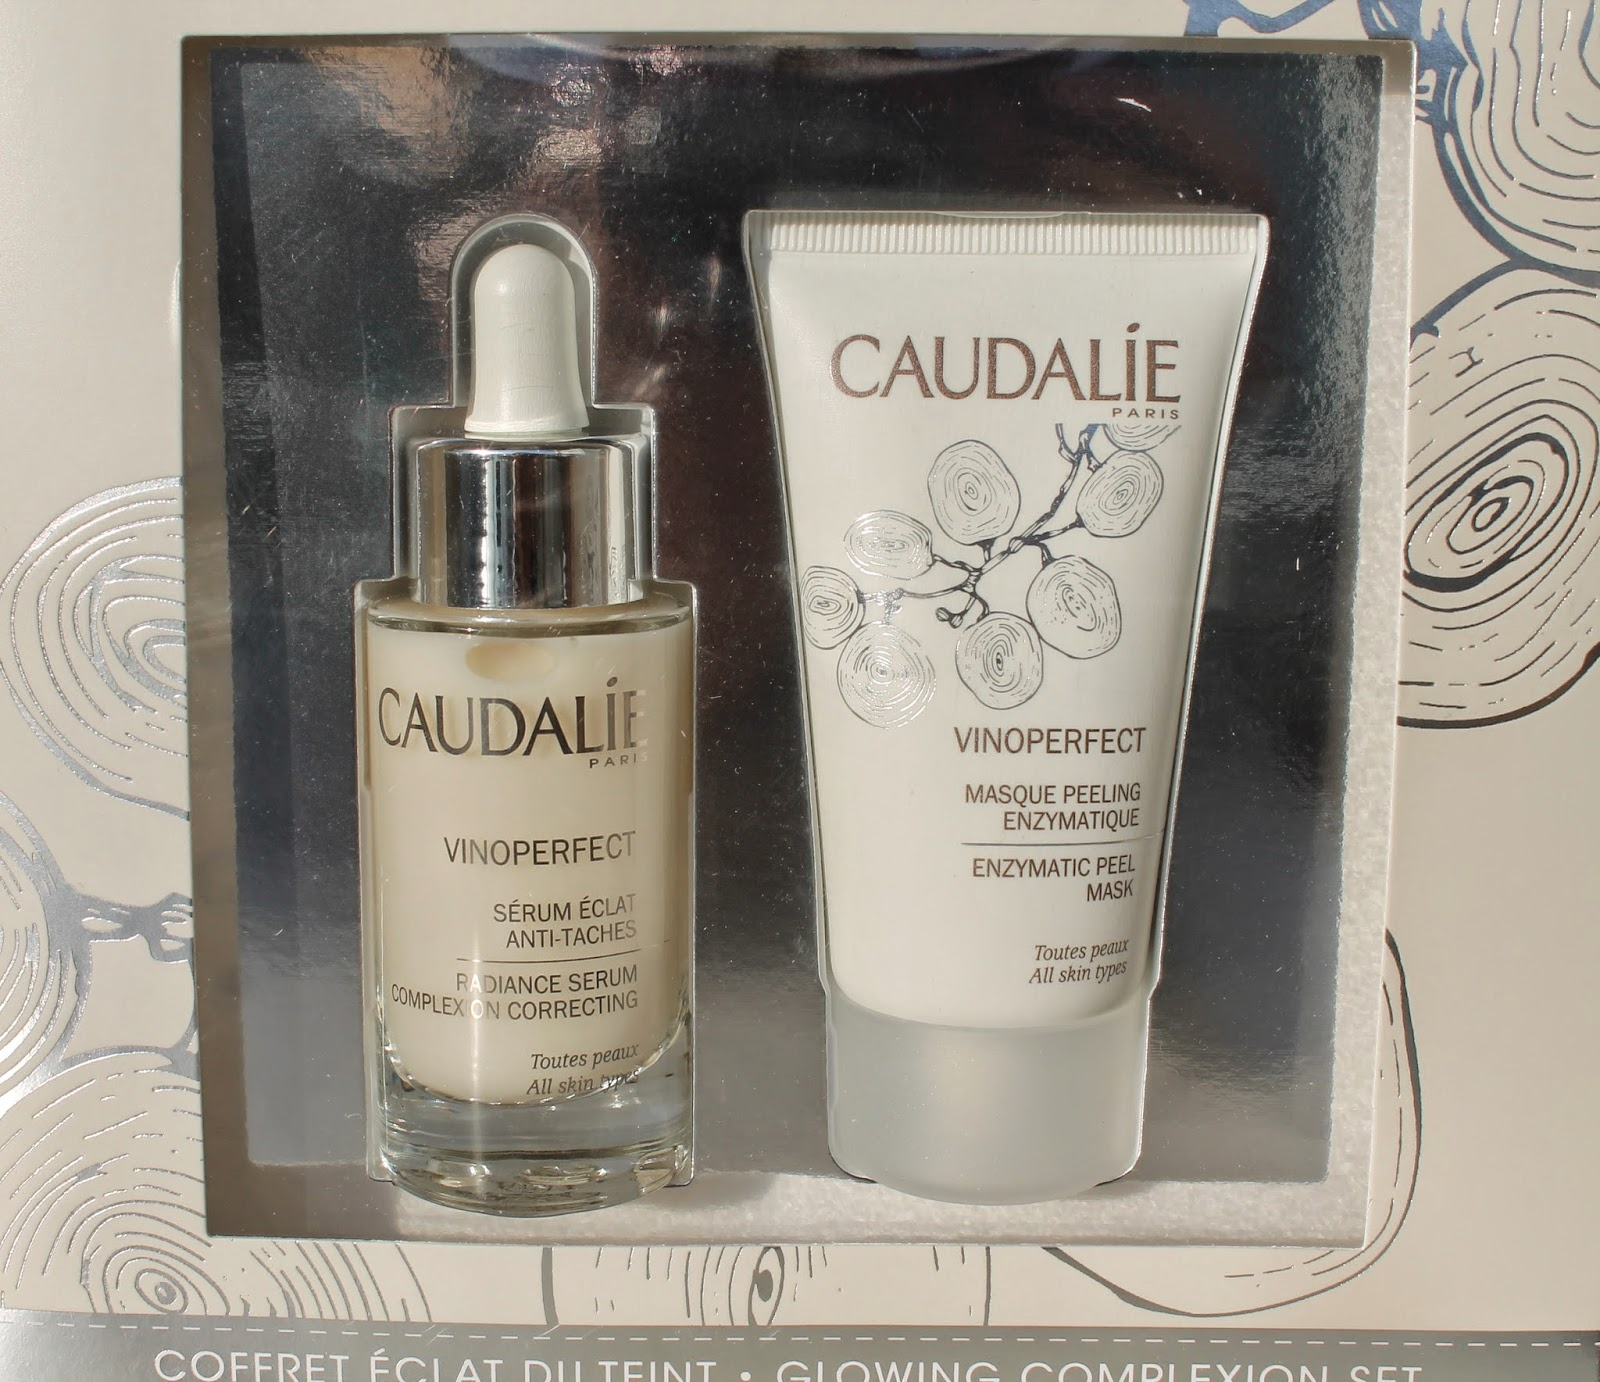 Caudalie Sérum éclat anti-taches